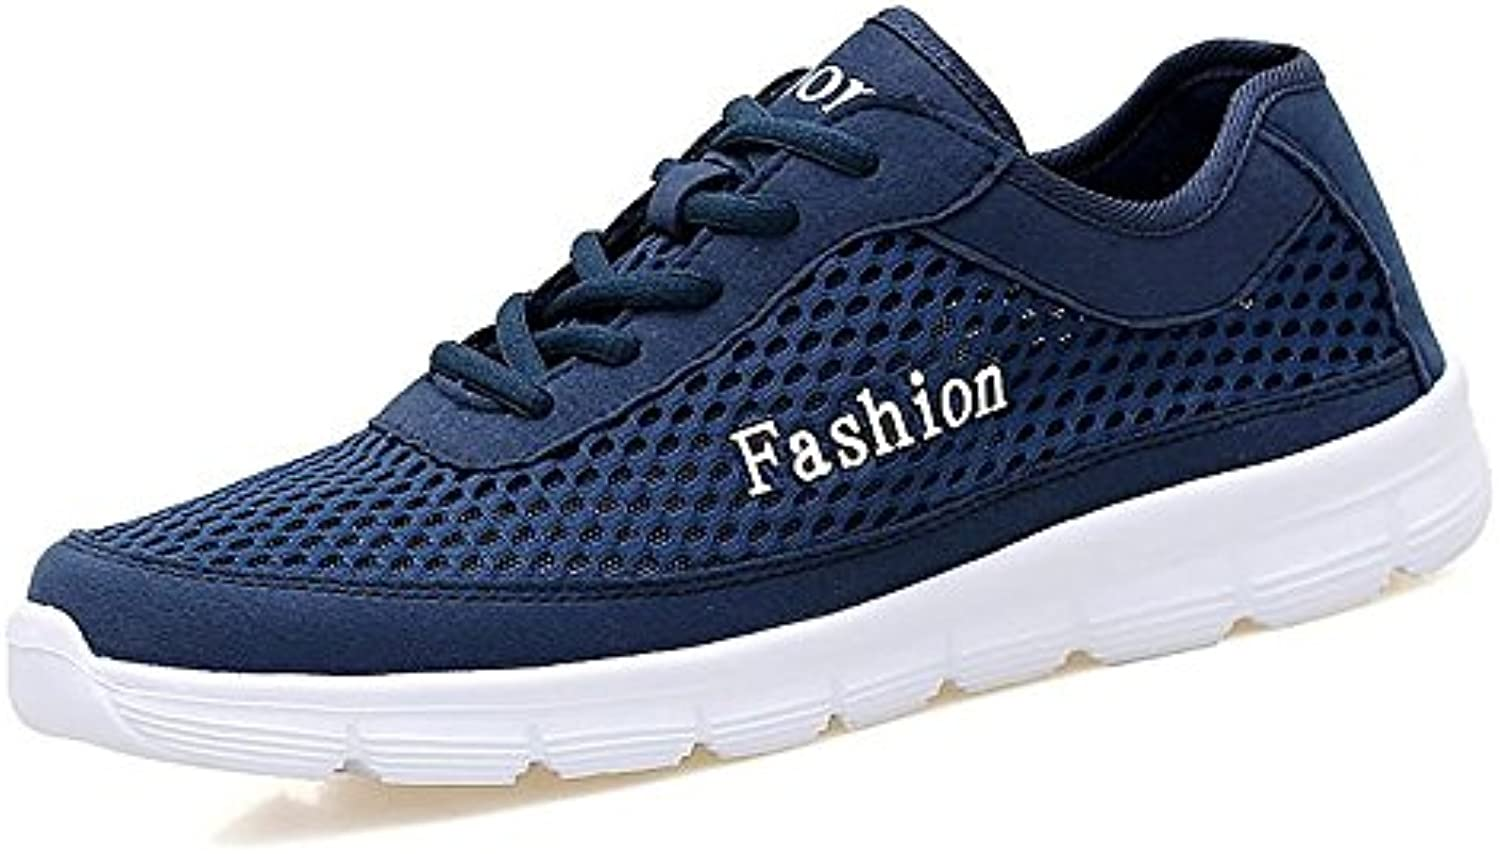 shuo hommes lan hu wai hommes shuo est atkletic chaussures round toe croûton couleur basket 0f3bb8